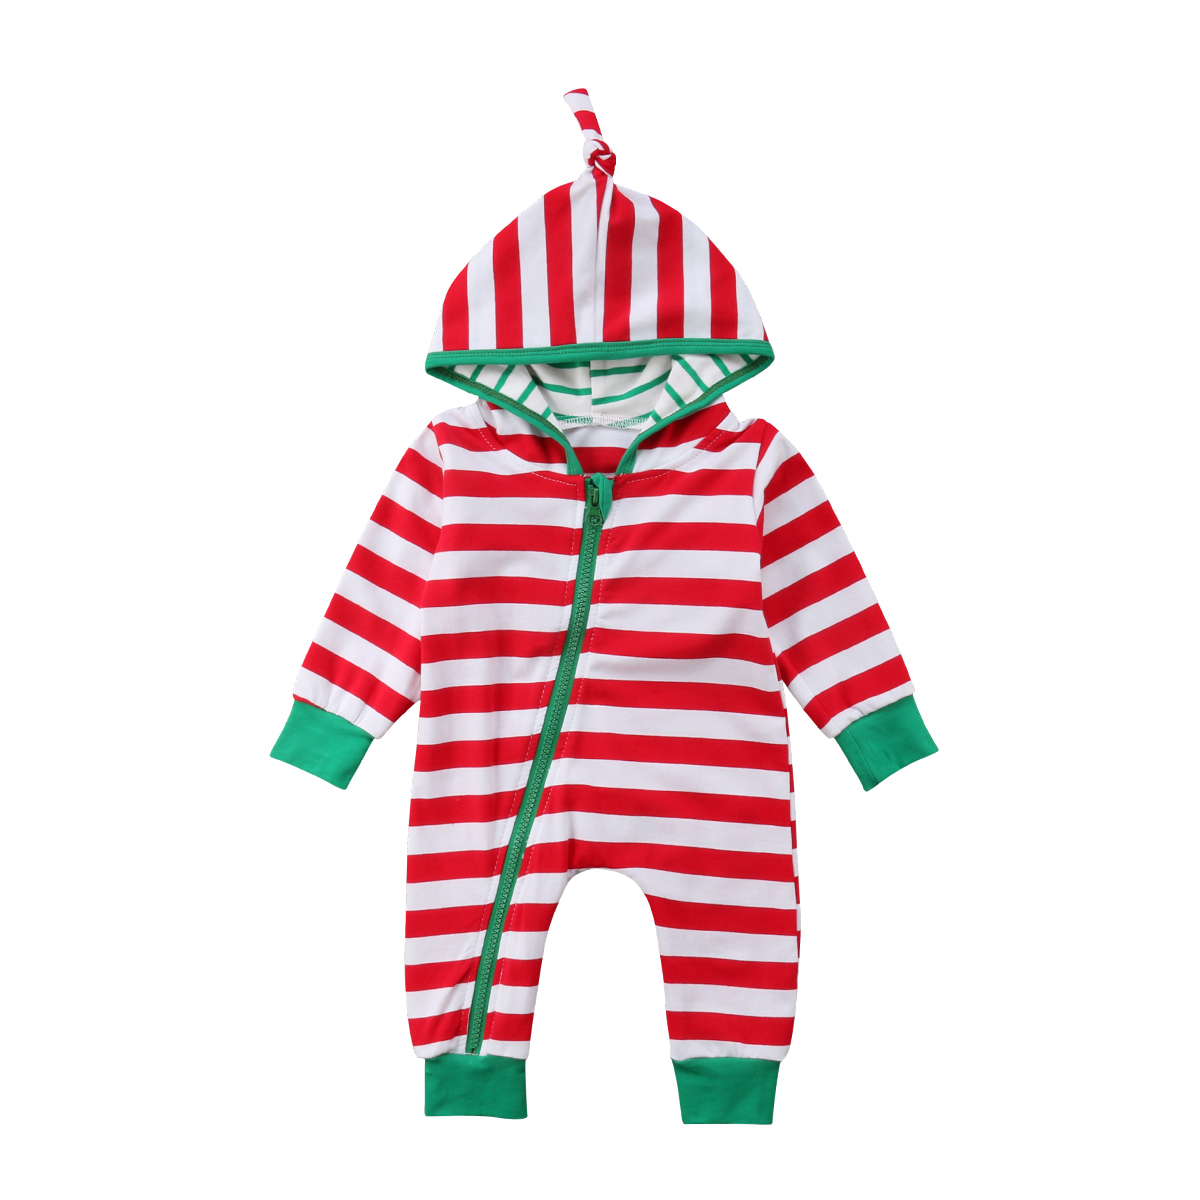 cb95a91f9 Christmas Baby Rompers Toddler Baby Boys Girls Green Striped Long ...